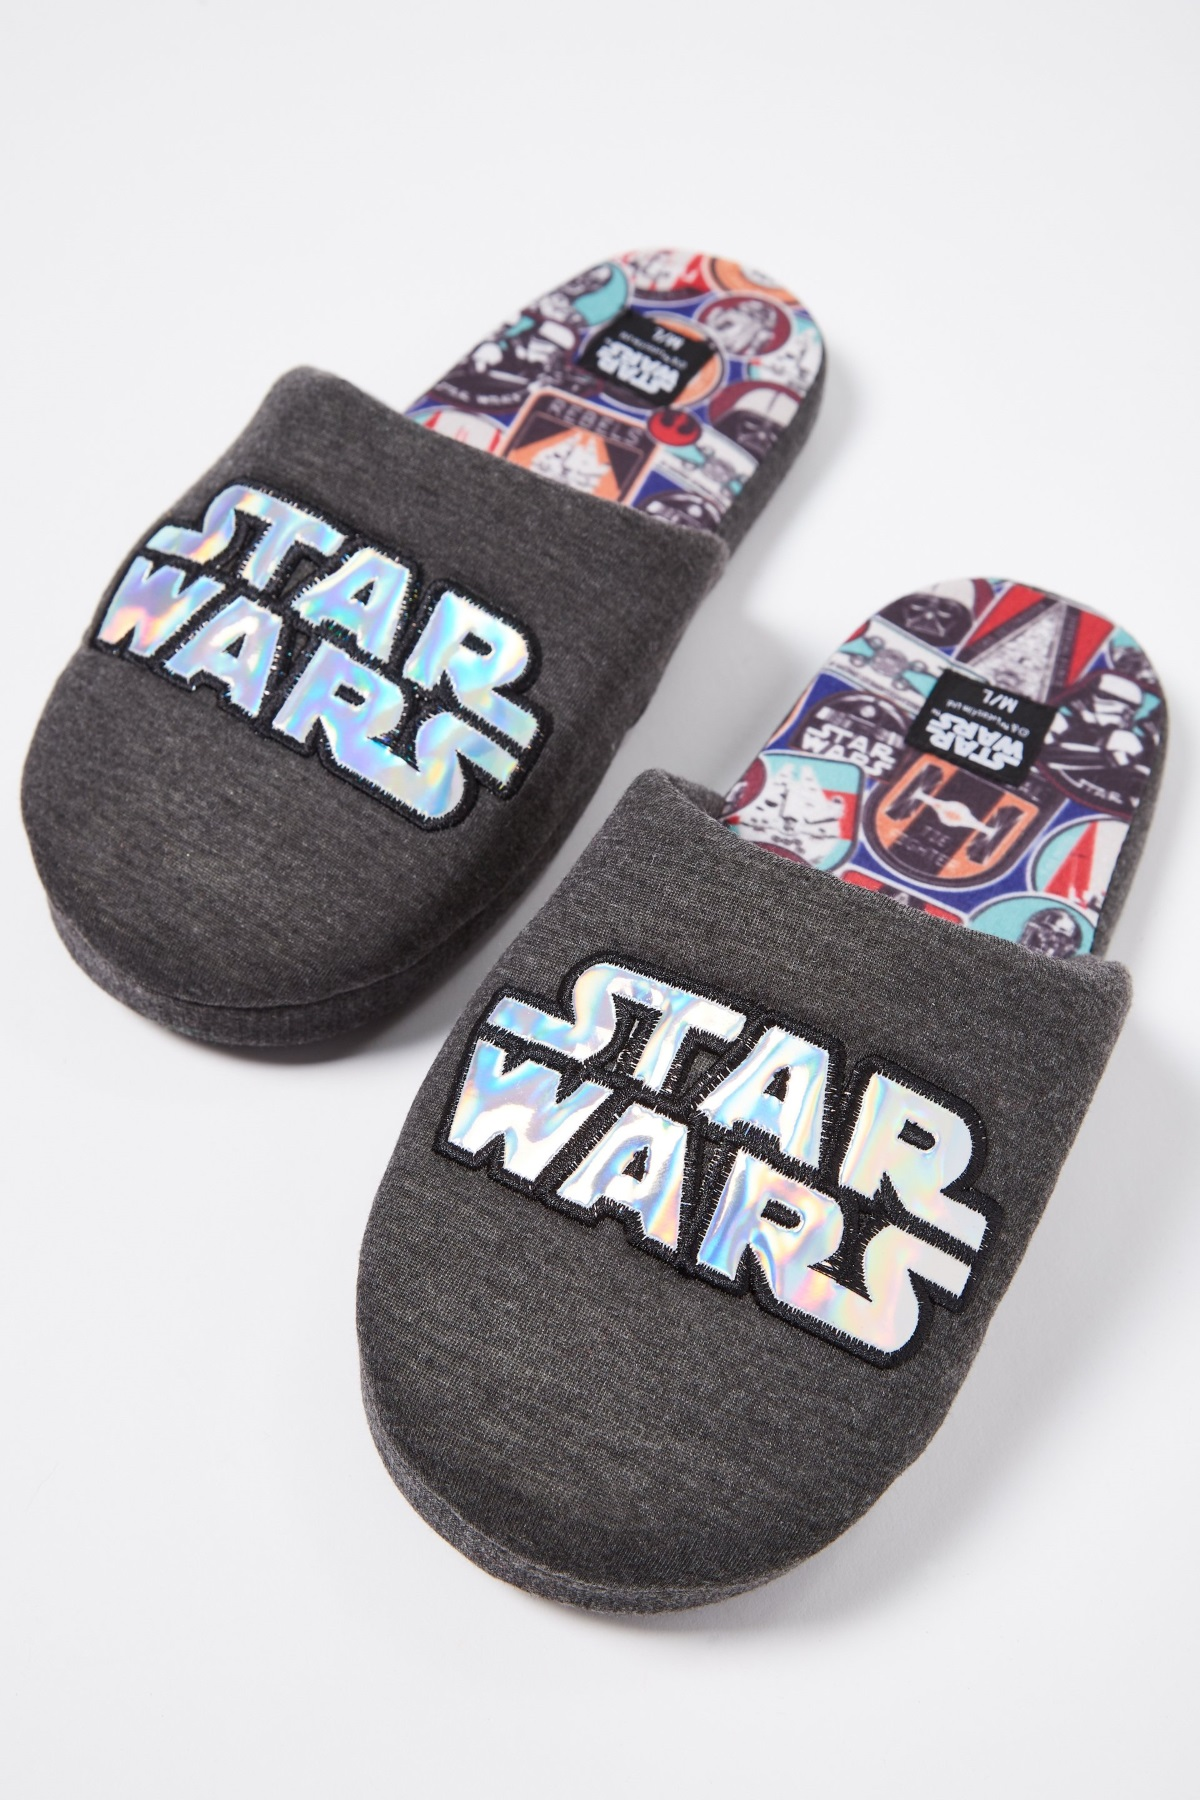 Star Wars Slippers at Cotton On NZ